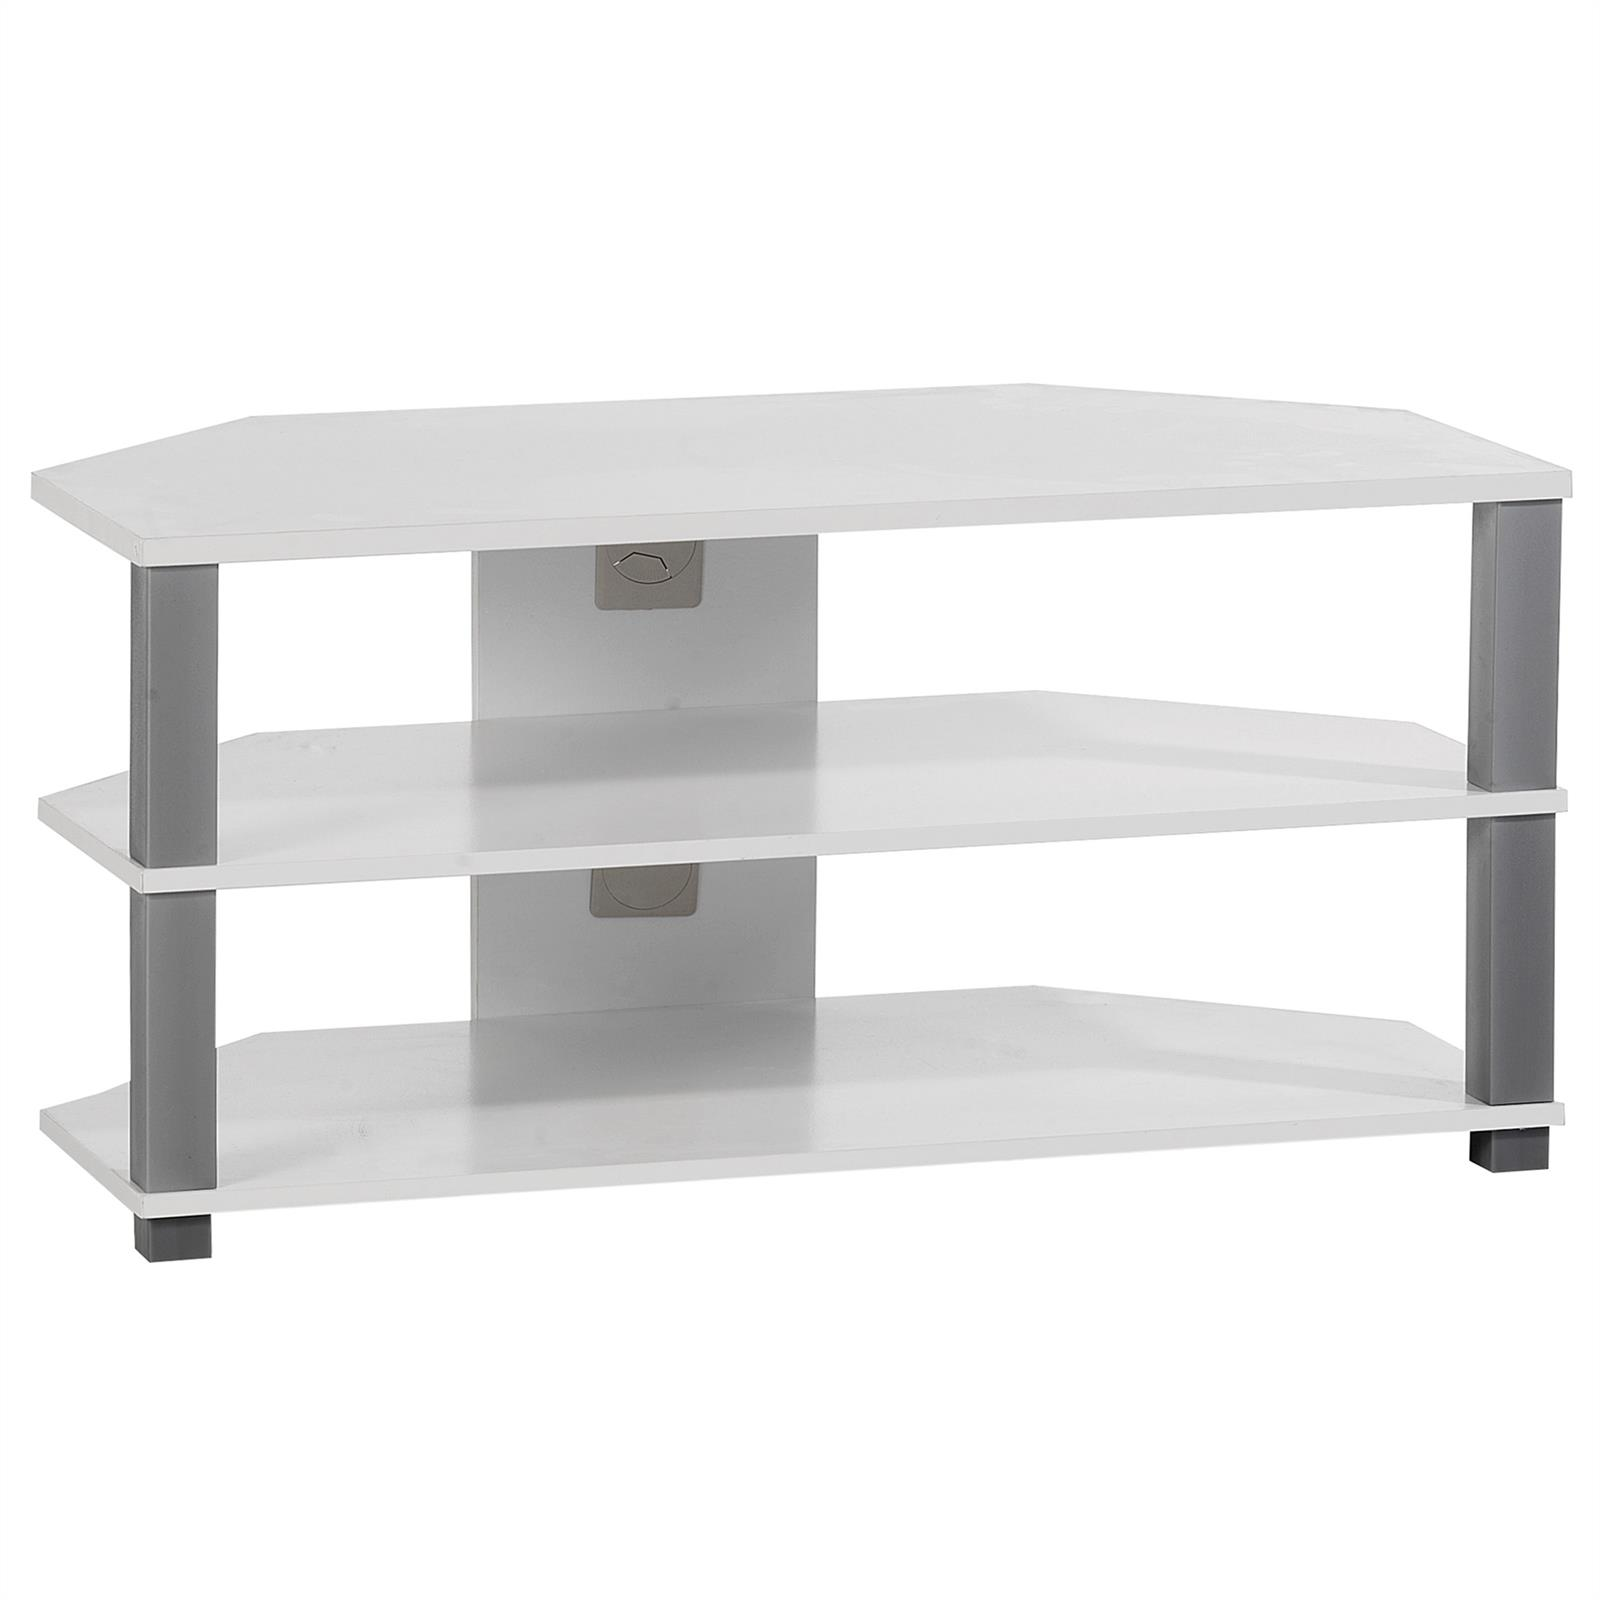 tv rack tisch schrank board unterschrank hifi media m bel design in weiss grau eur 29 95. Black Bedroom Furniture Sets. Home Design Ideas